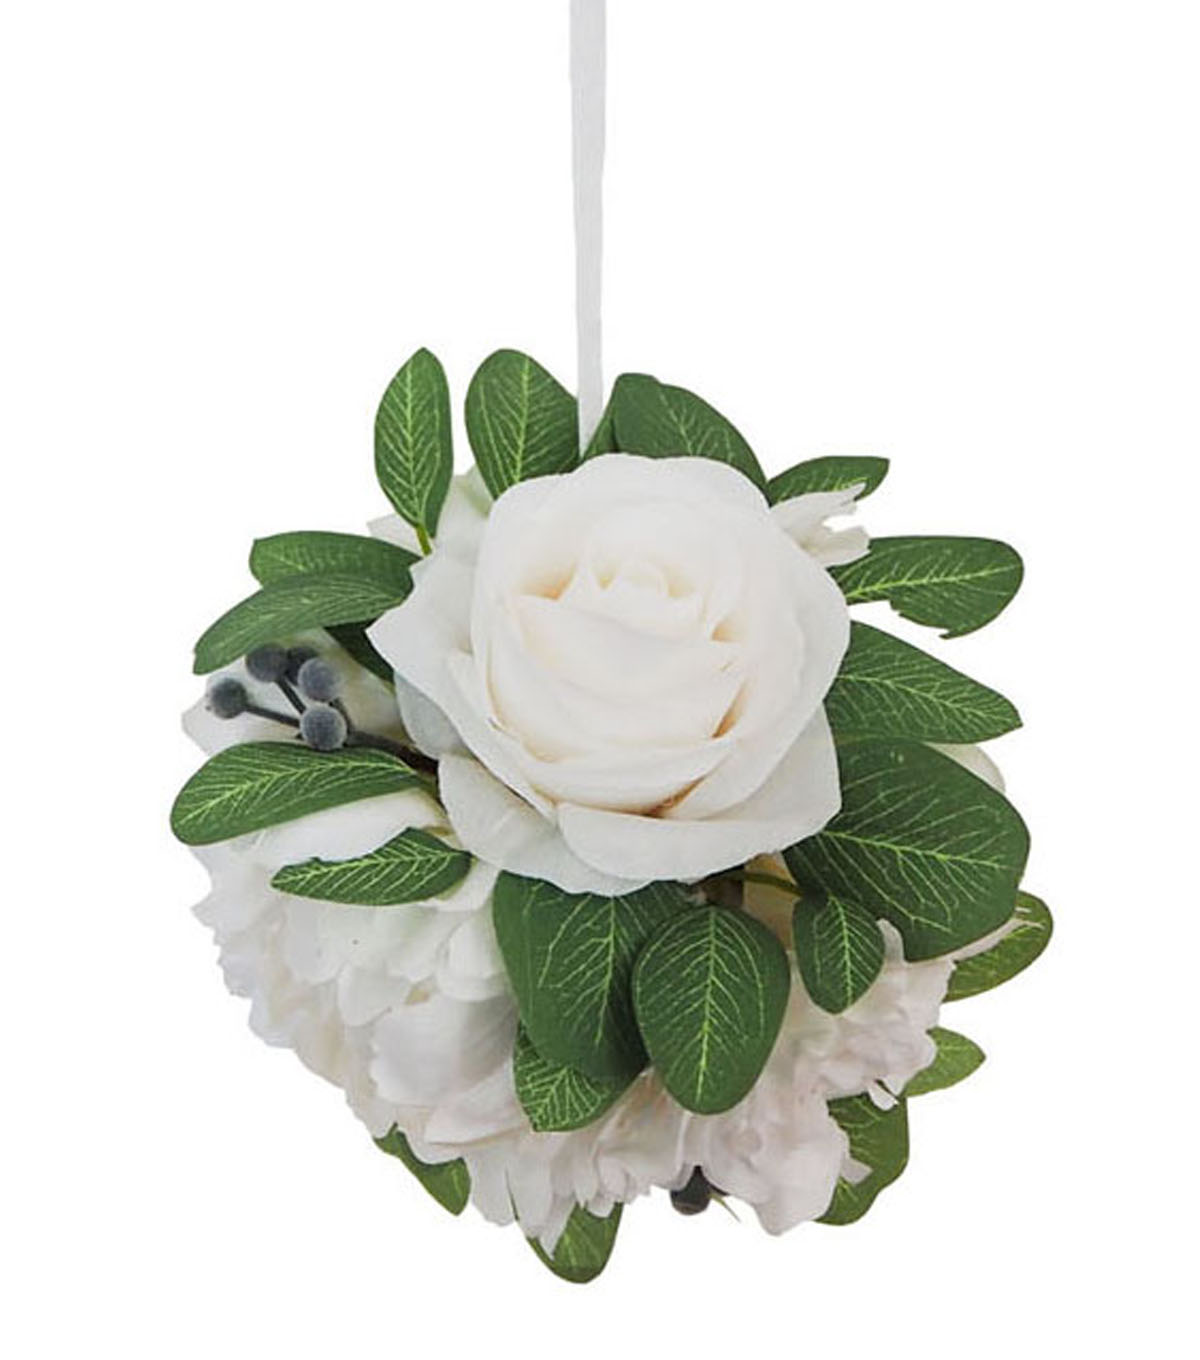 Blooming Autumn Small Peony & Dahlia Kissing Ball-White